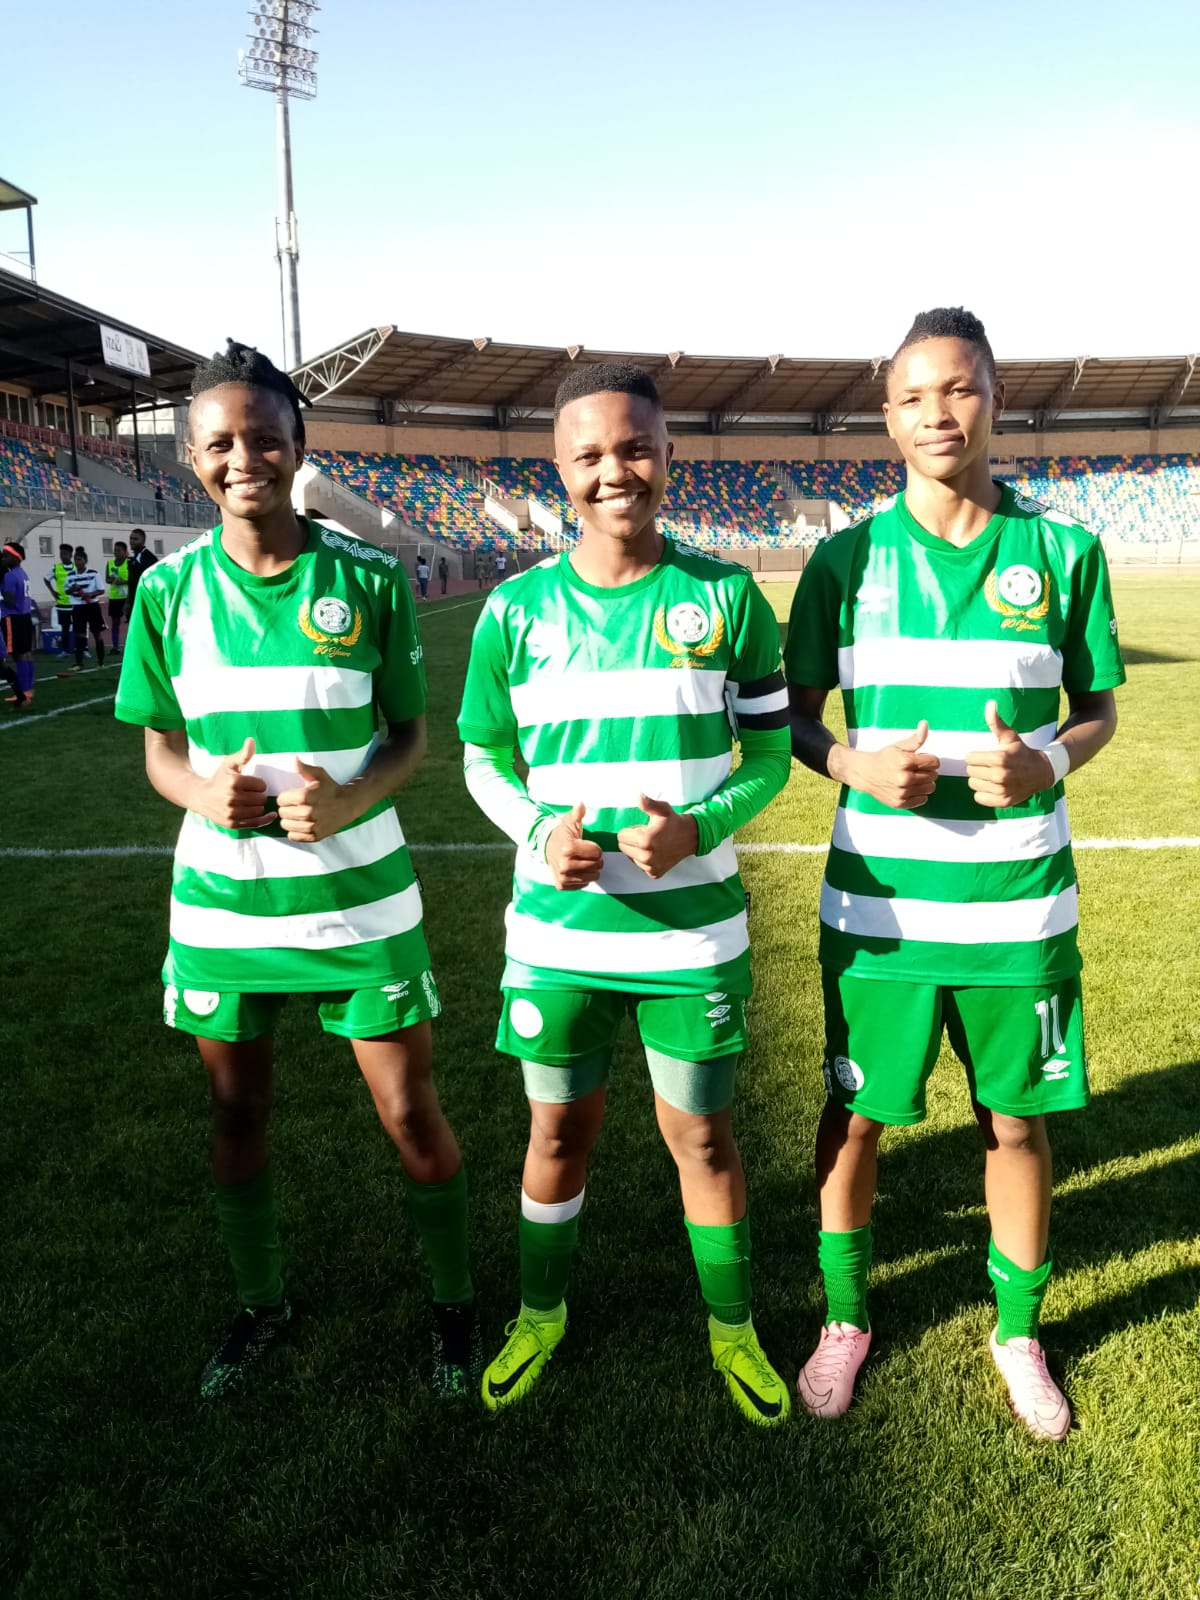 Bloemfontein Celtic Ladies will be buzzing after beating the much-fancied JVW Girls last time out